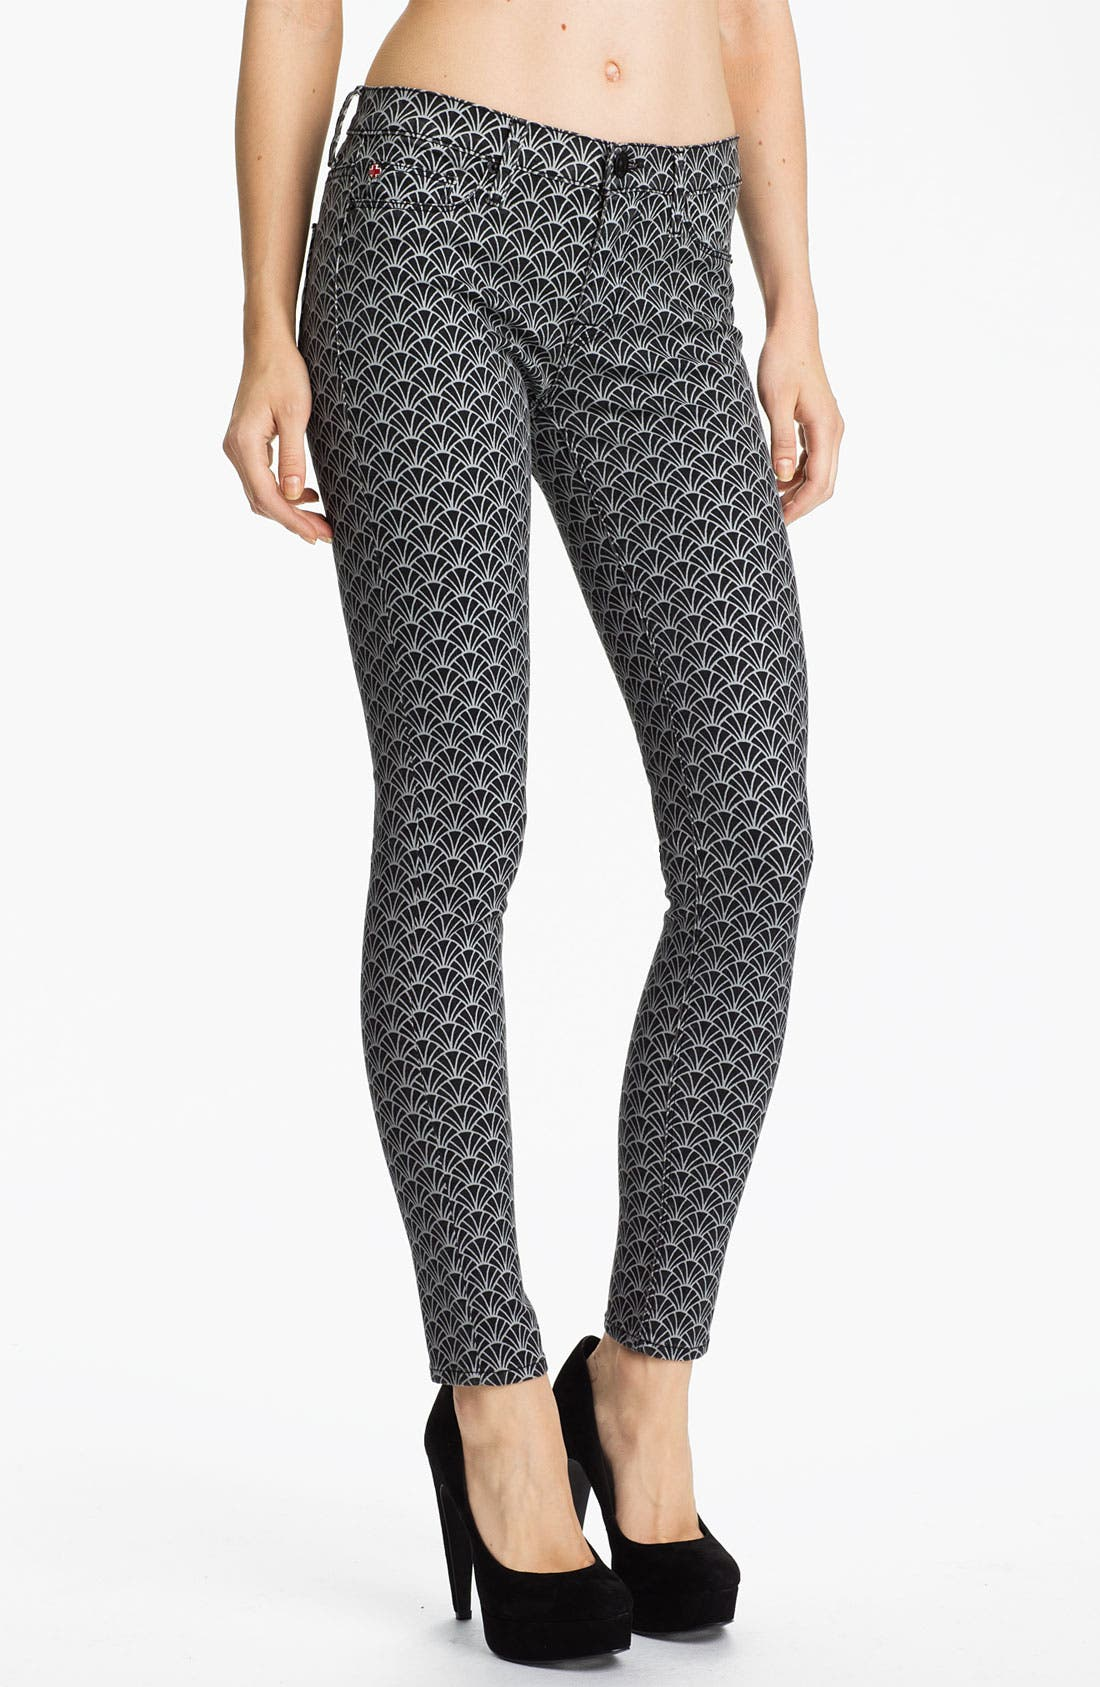 Alternate Image 1 Selected - Hudson Jeans 'Nico' Mid Rise Skinny Stretch Jeans (Diamond Art Deco)